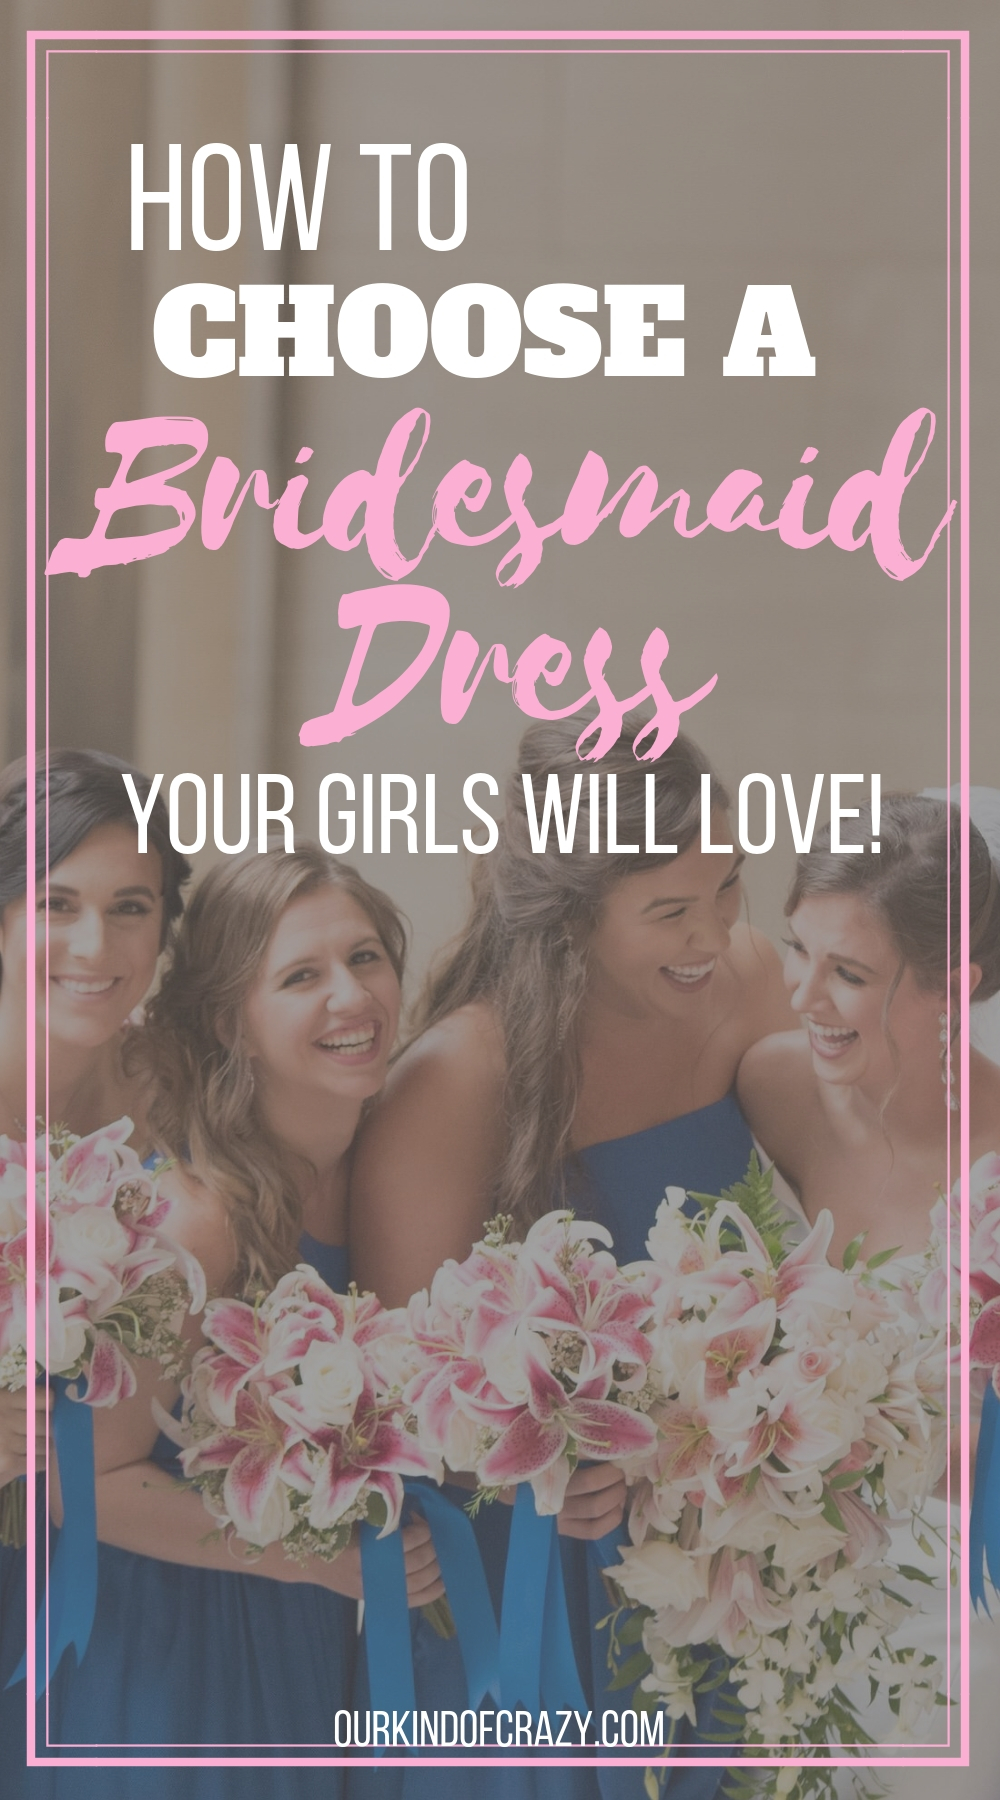 How to Choose a Bridesmaid Dress Your Girls Will Love!